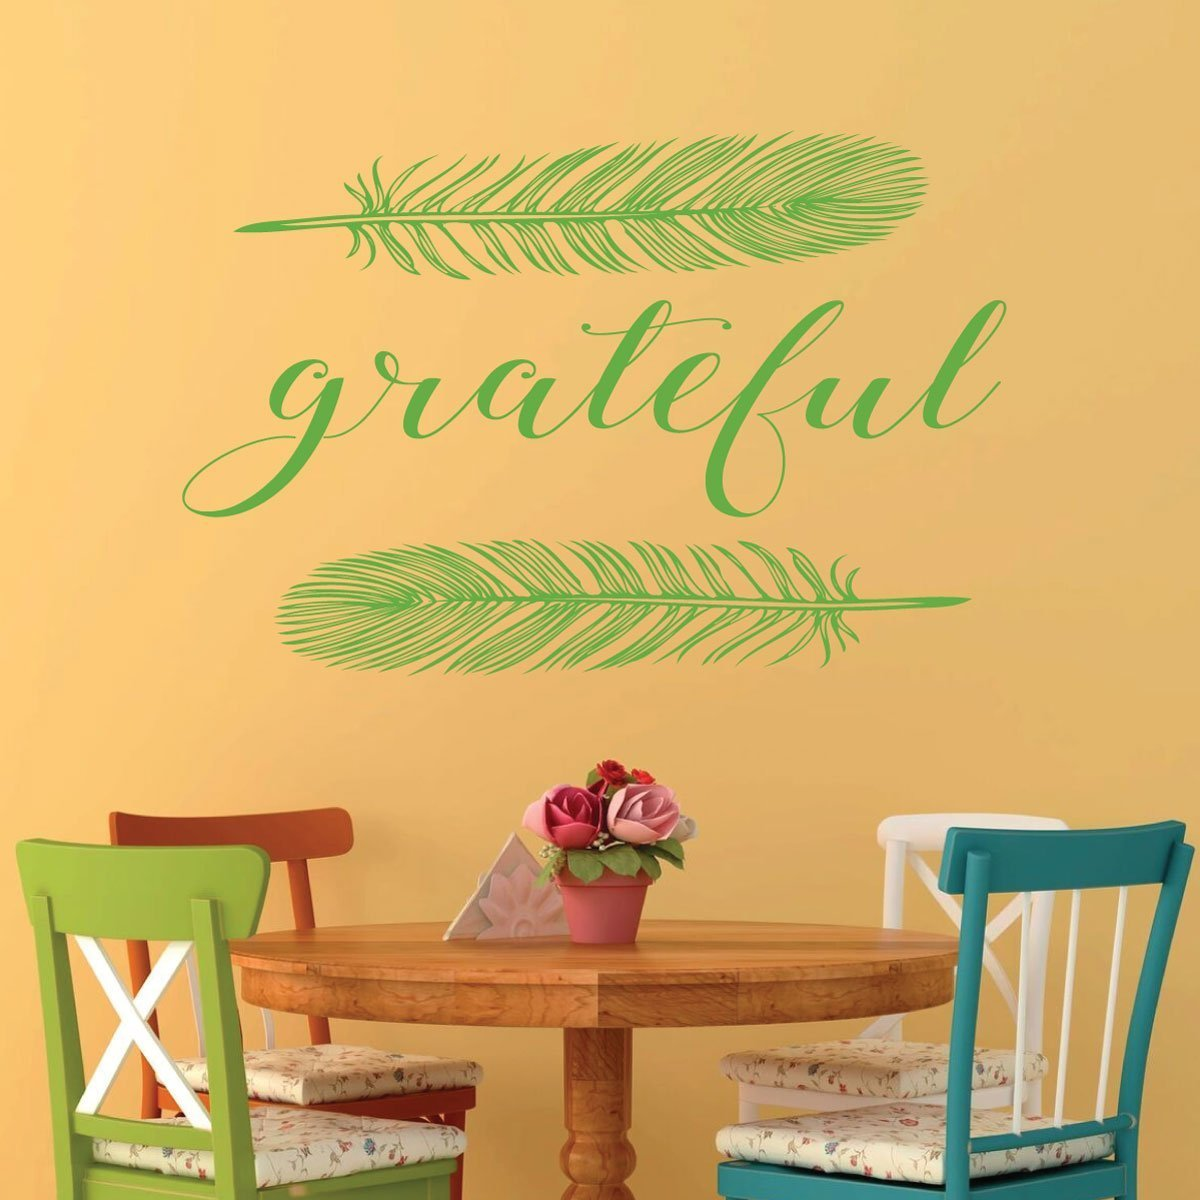 Thanksgiving Decor - Grateful With Feathers - Gratitude ...